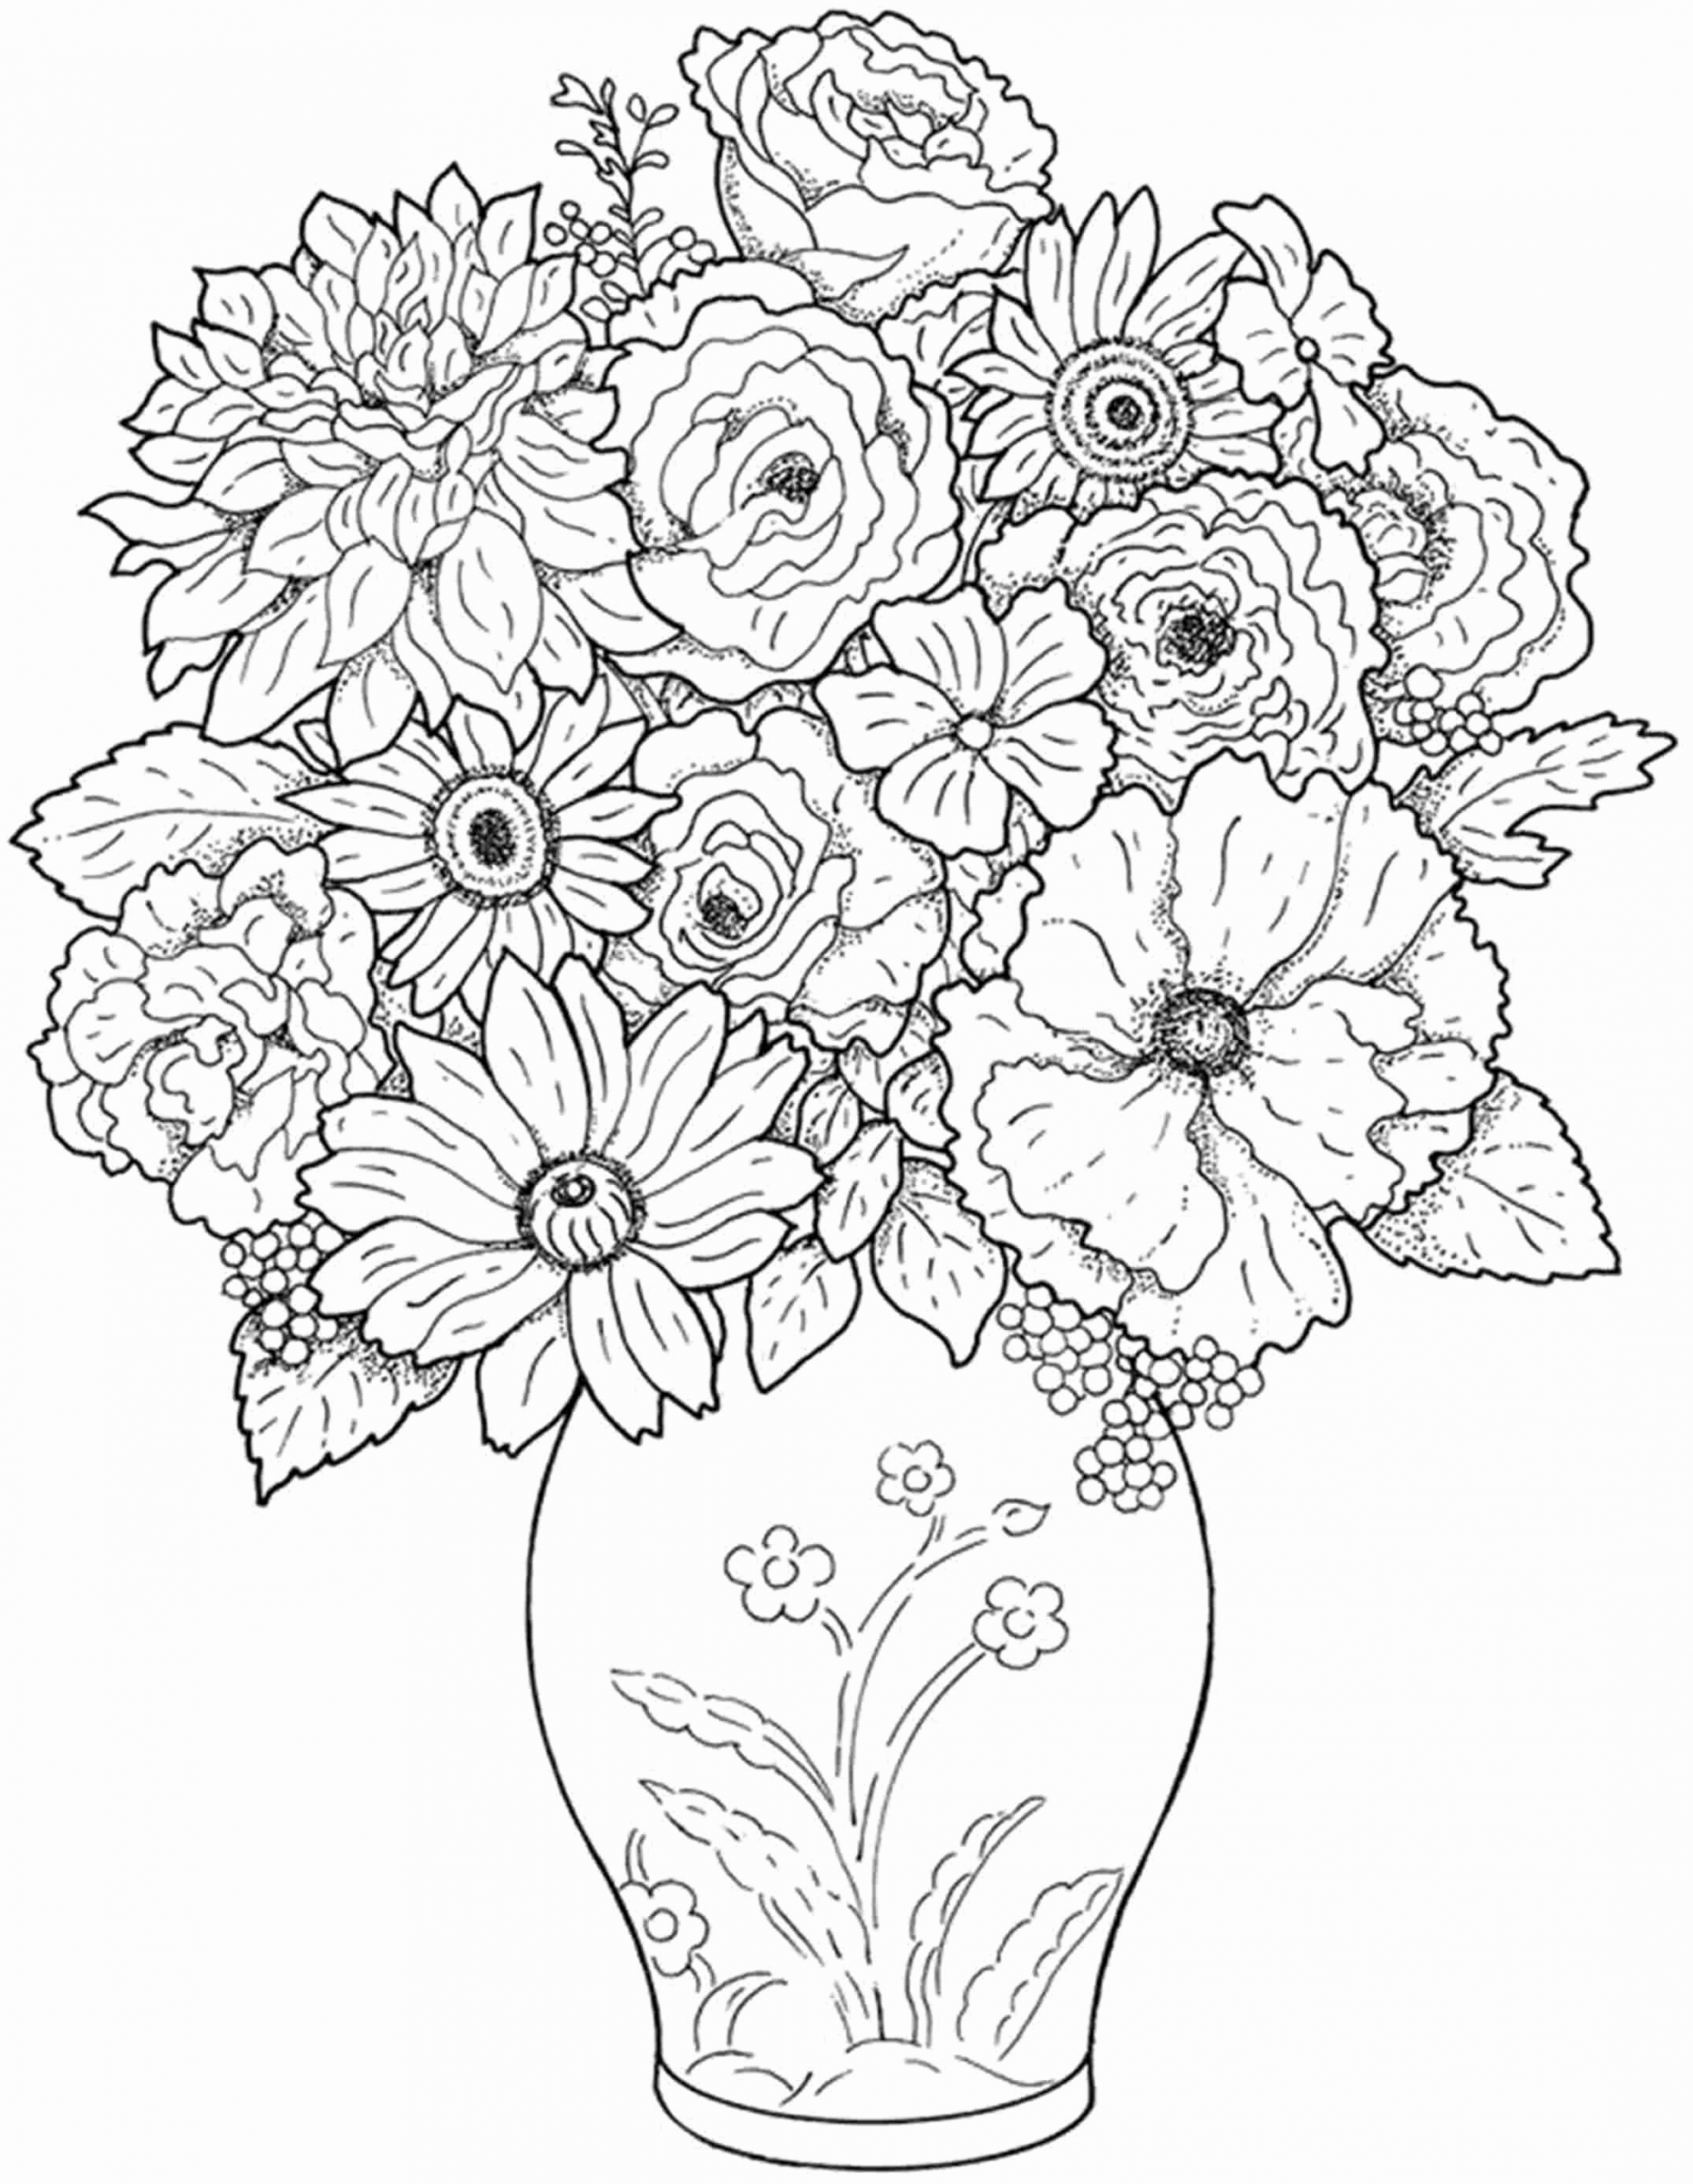 Pretty Flower Coloring Pages For Kids In 2020 Printable Flower Coloring Pages Detailed Coloring Pages Butterfly Coloring Page